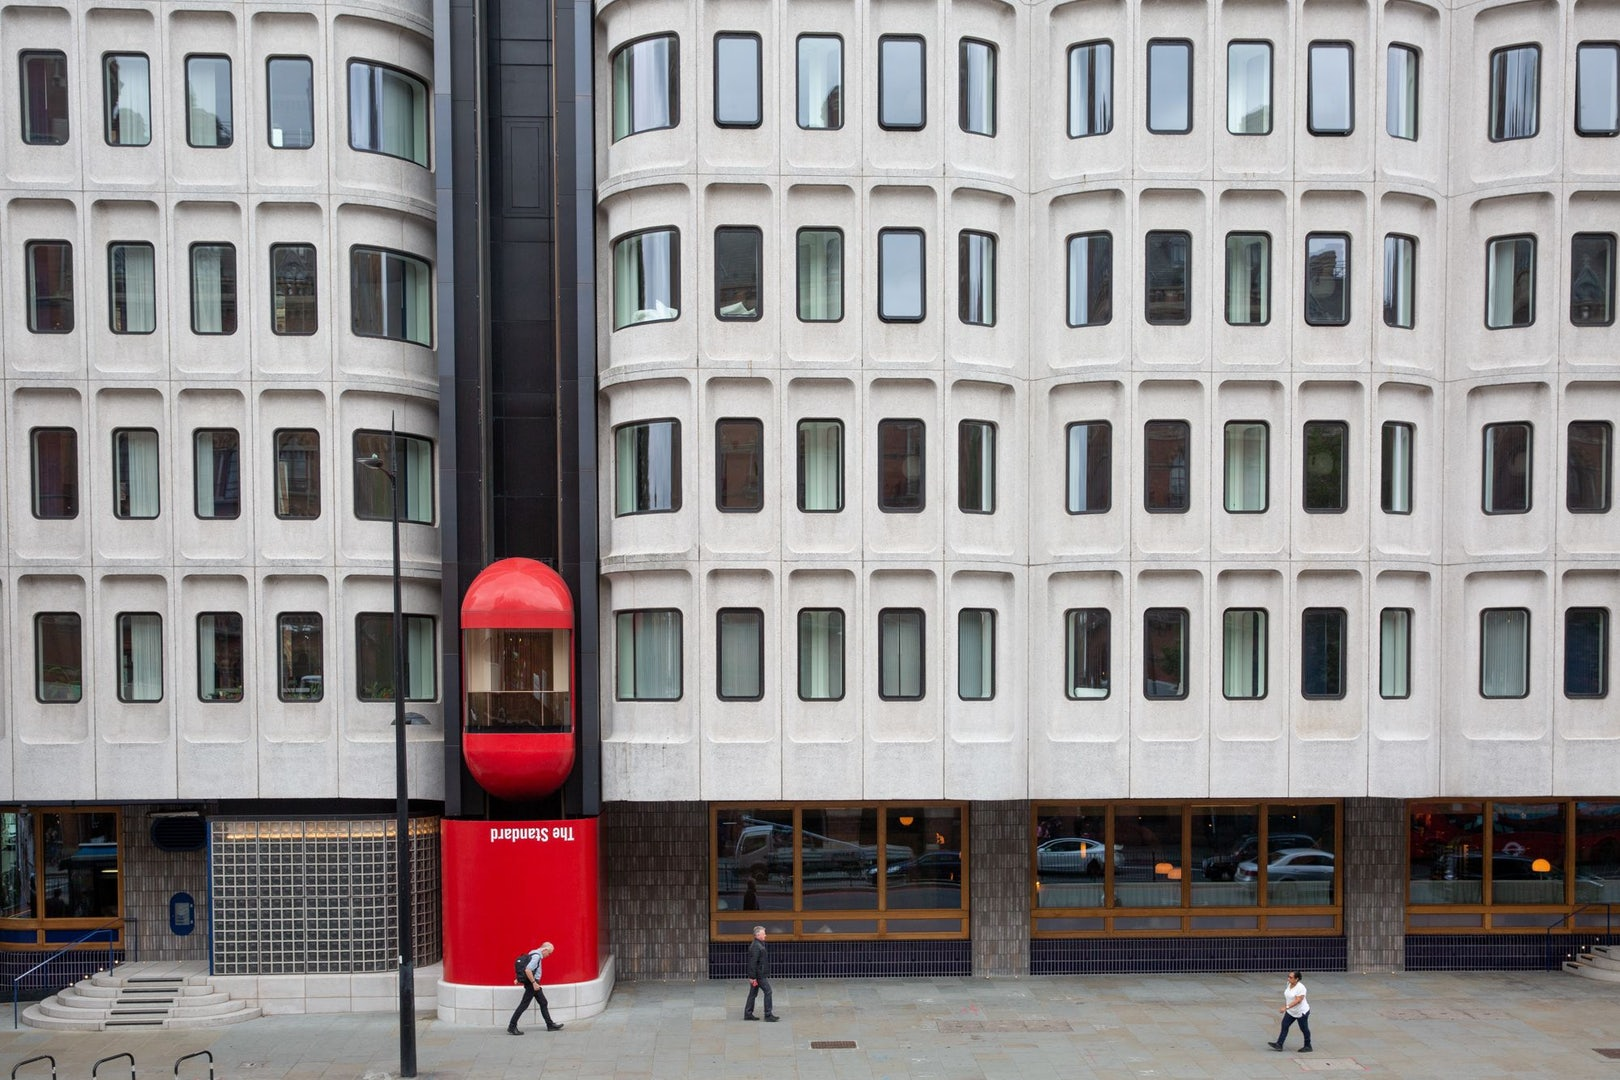 exterior of the Standard Hotel in London